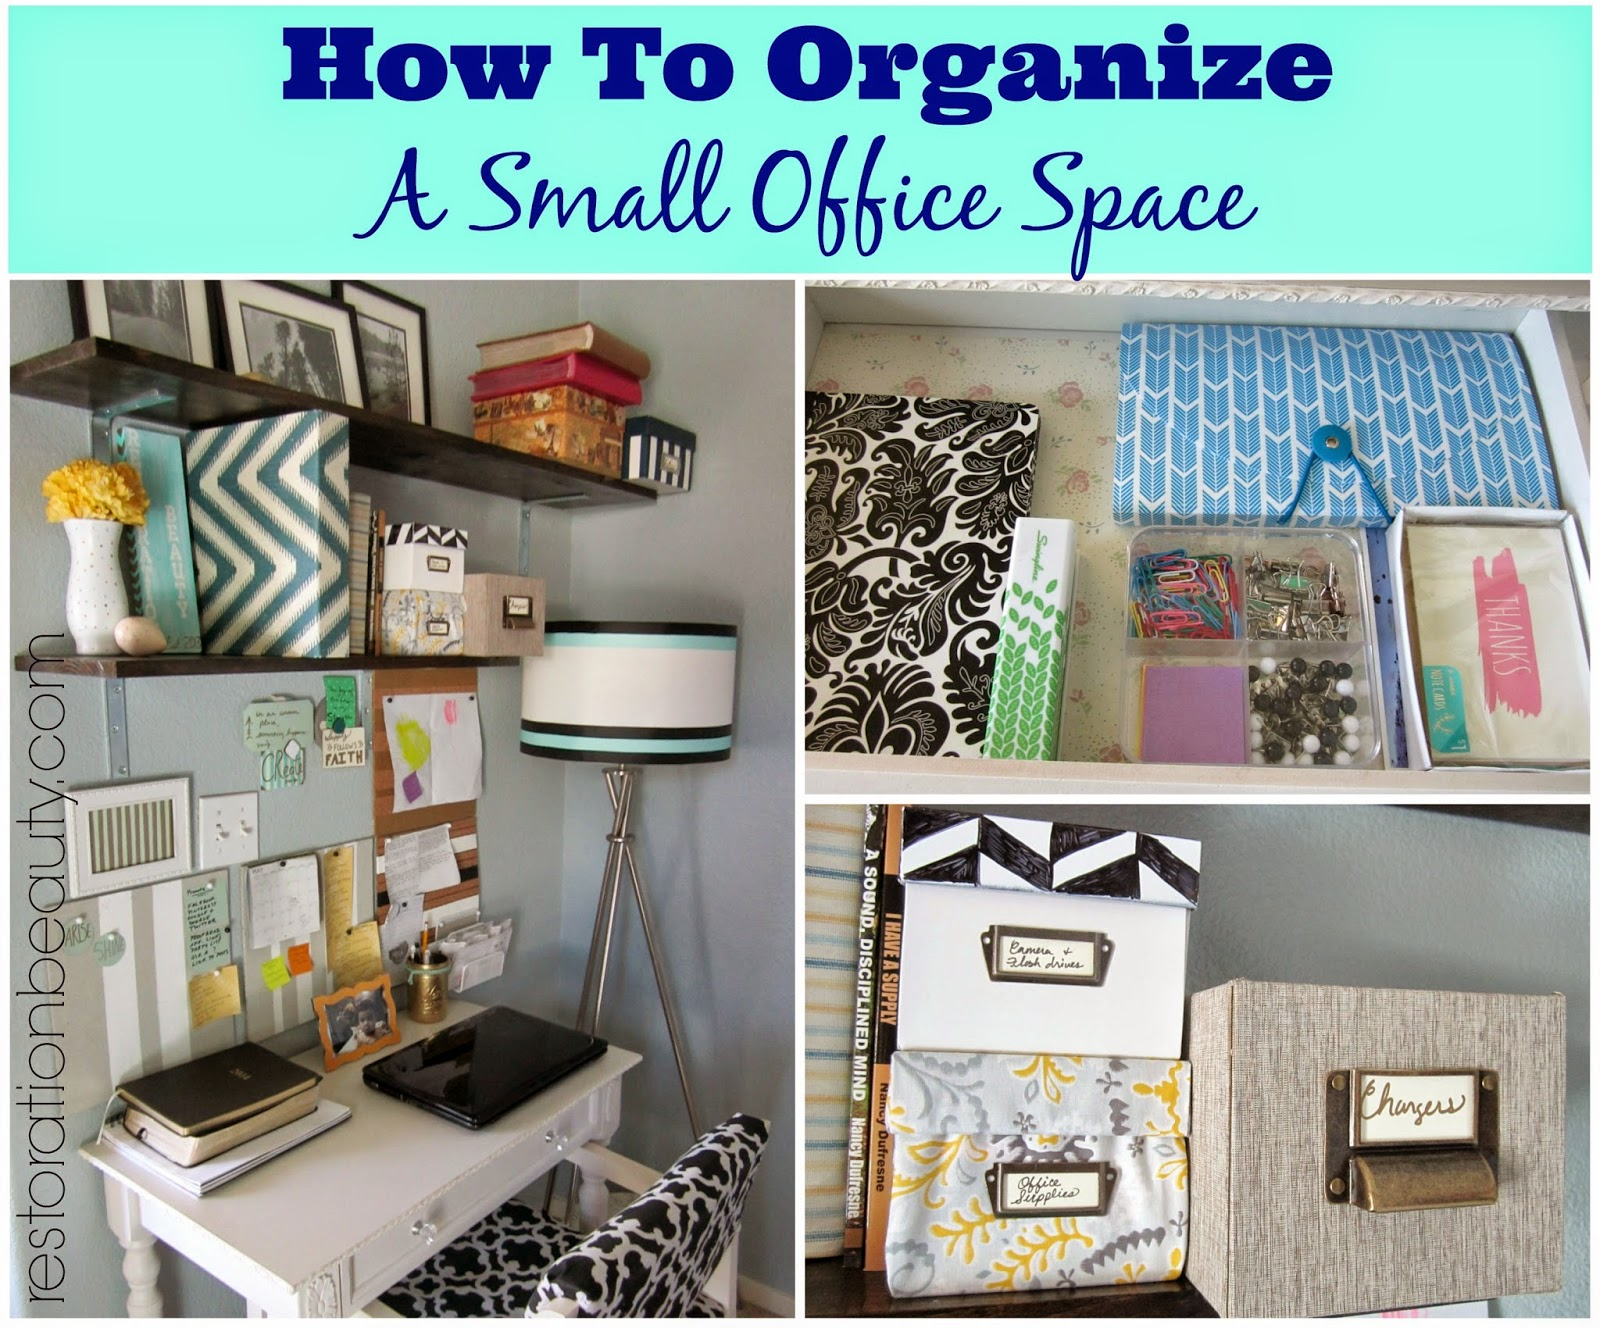 Organizing Office Space. How To Organize A Small Office/work Space {tips \